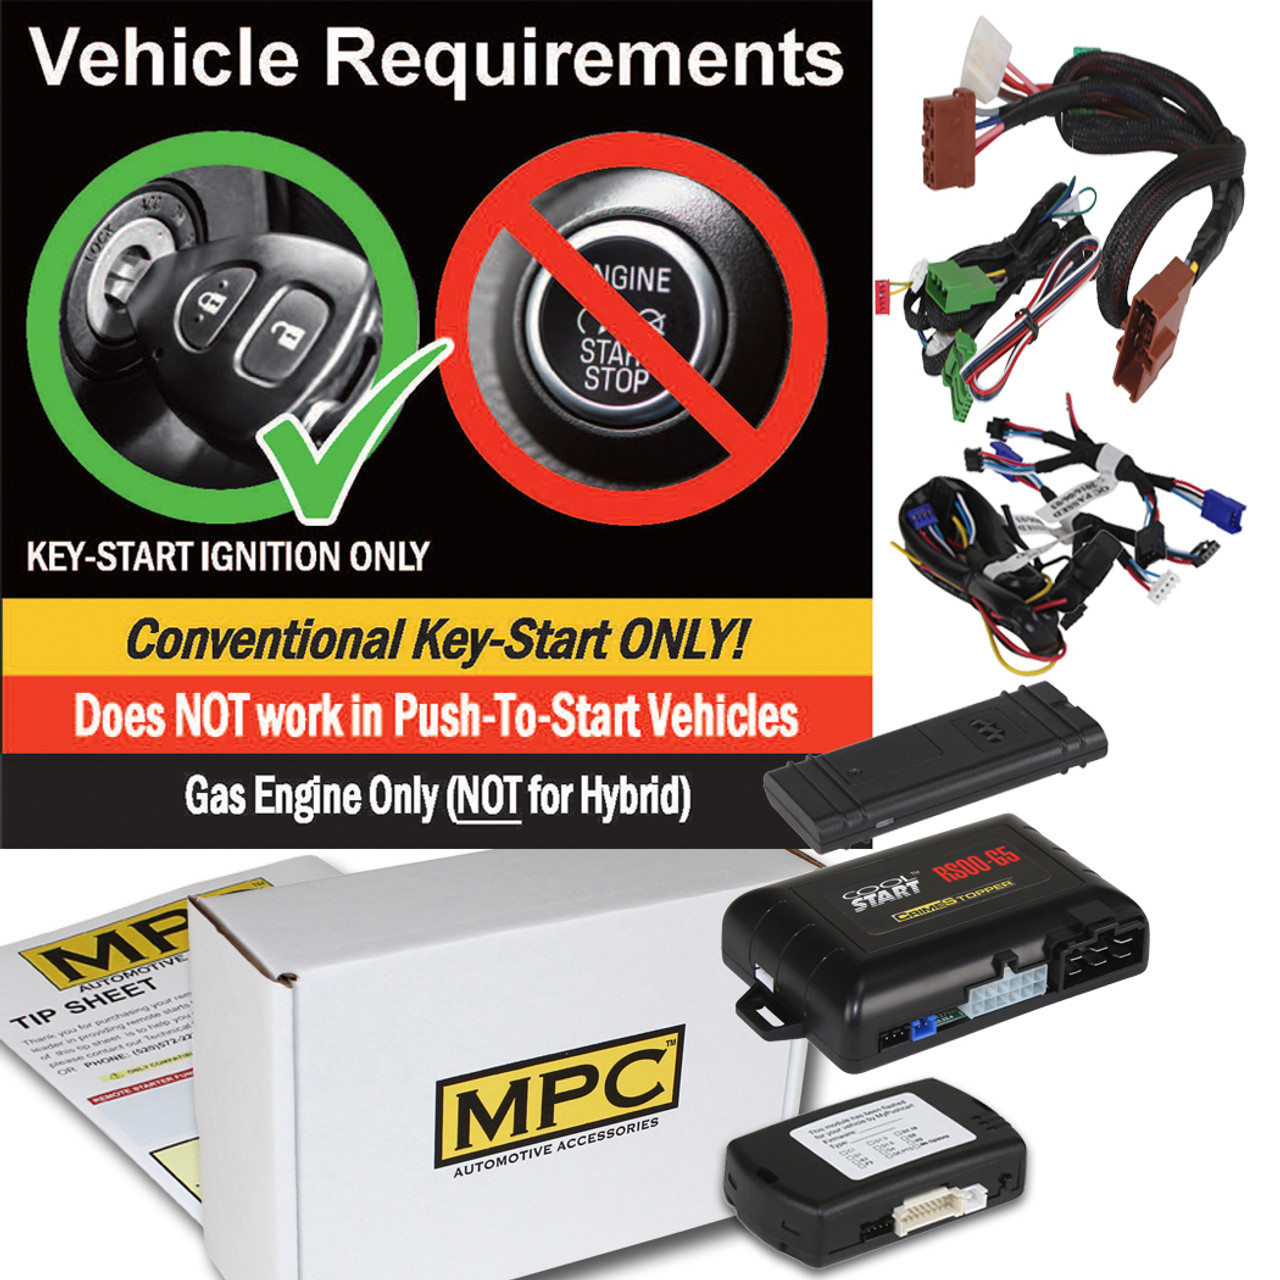 MPC Smartphone/OEM Remote Activated Remote Start Kit For 2007-2010 Acura RDX